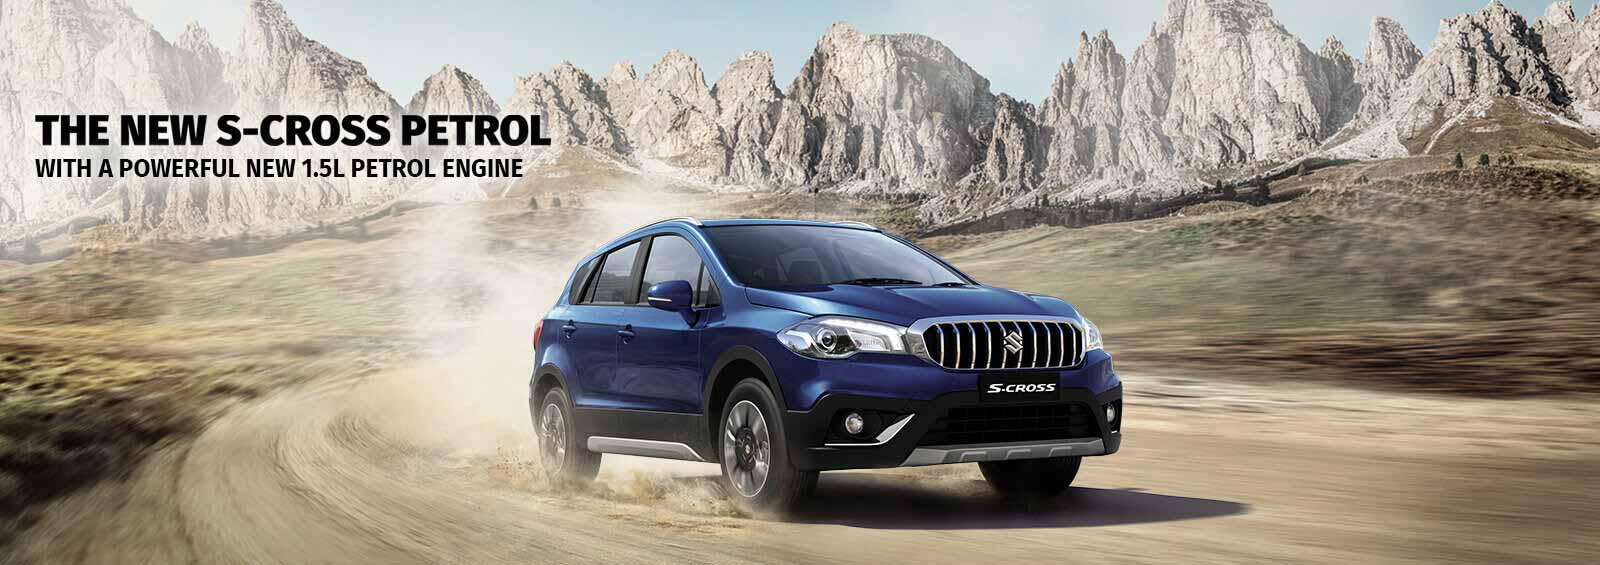 S-Cross Pasco Automobiles Mathura Road, Faridabad